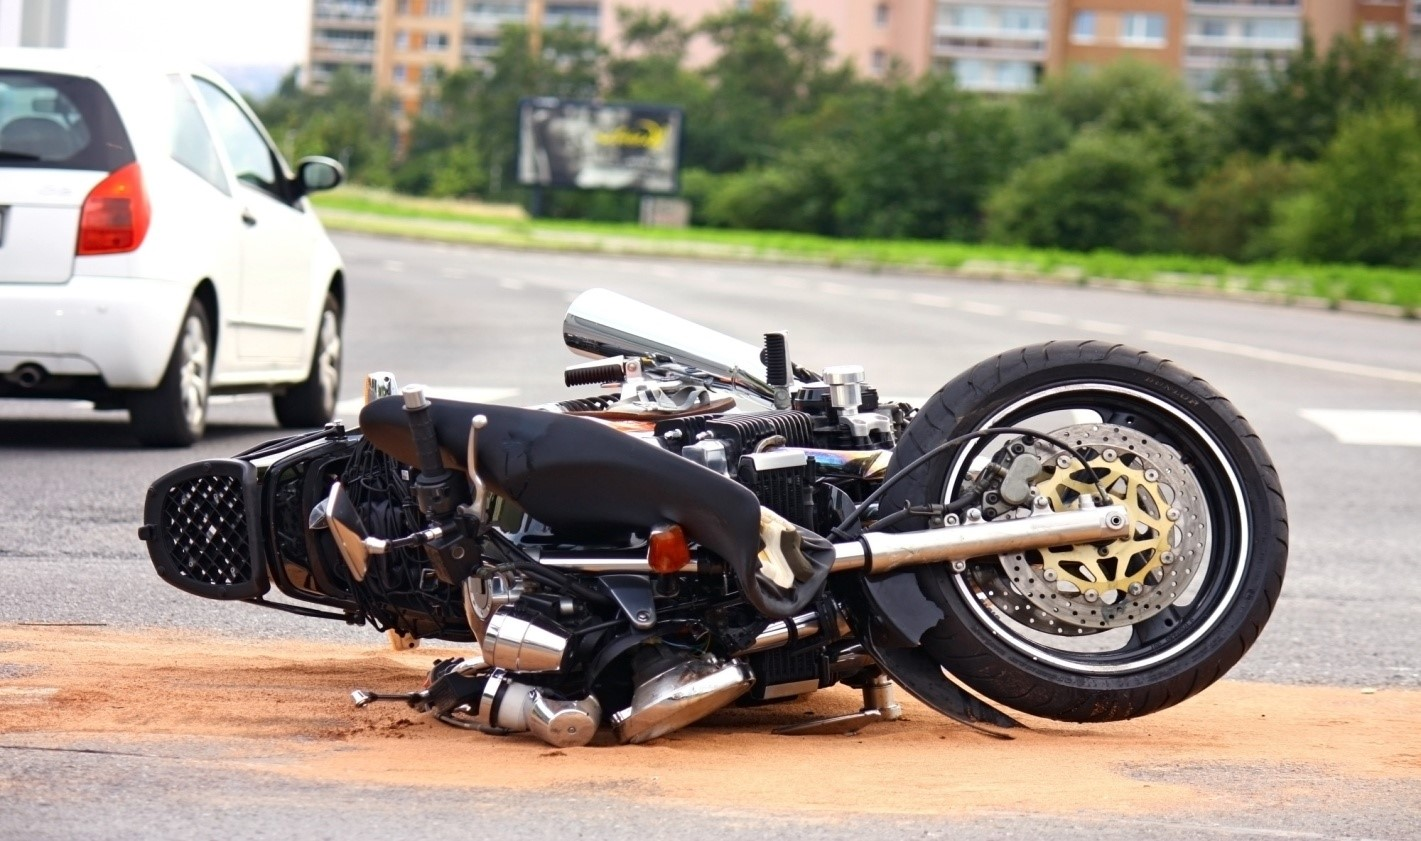 Everything You Need to Do After Motorcycle Crashes